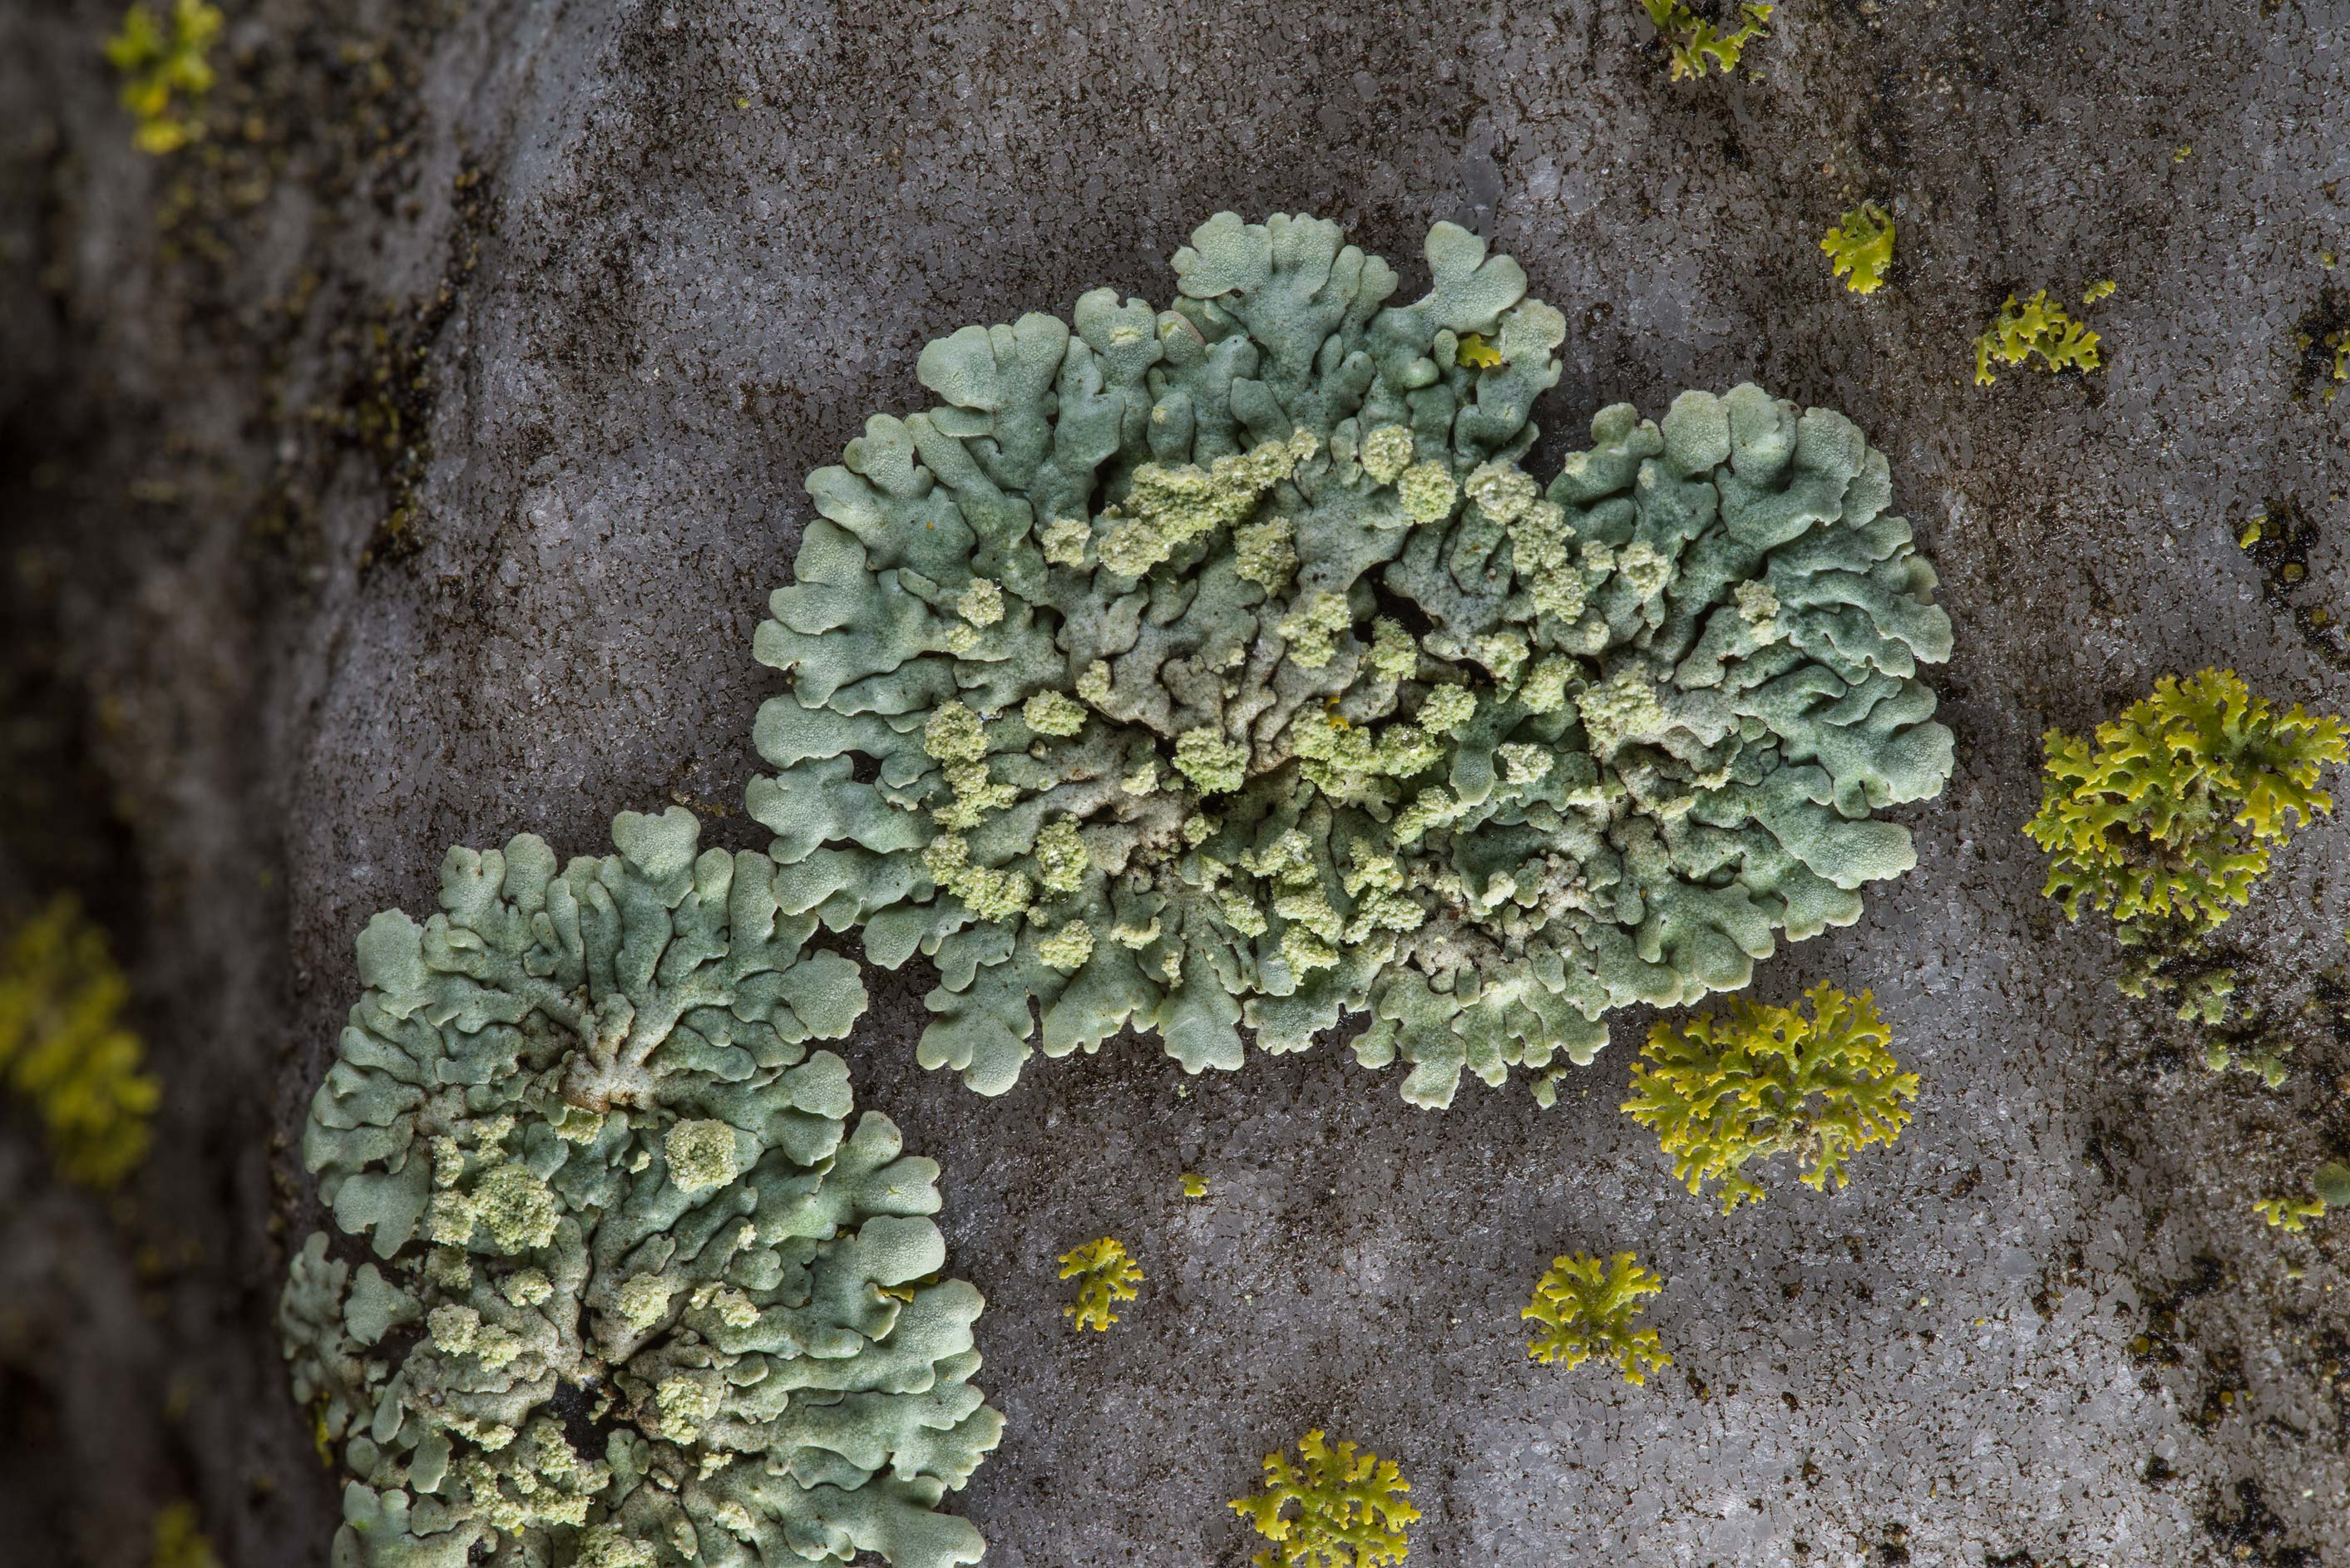 Small rosettes of Pyxine lichen on marble in Boonville Cemetery. Bryan, Texas